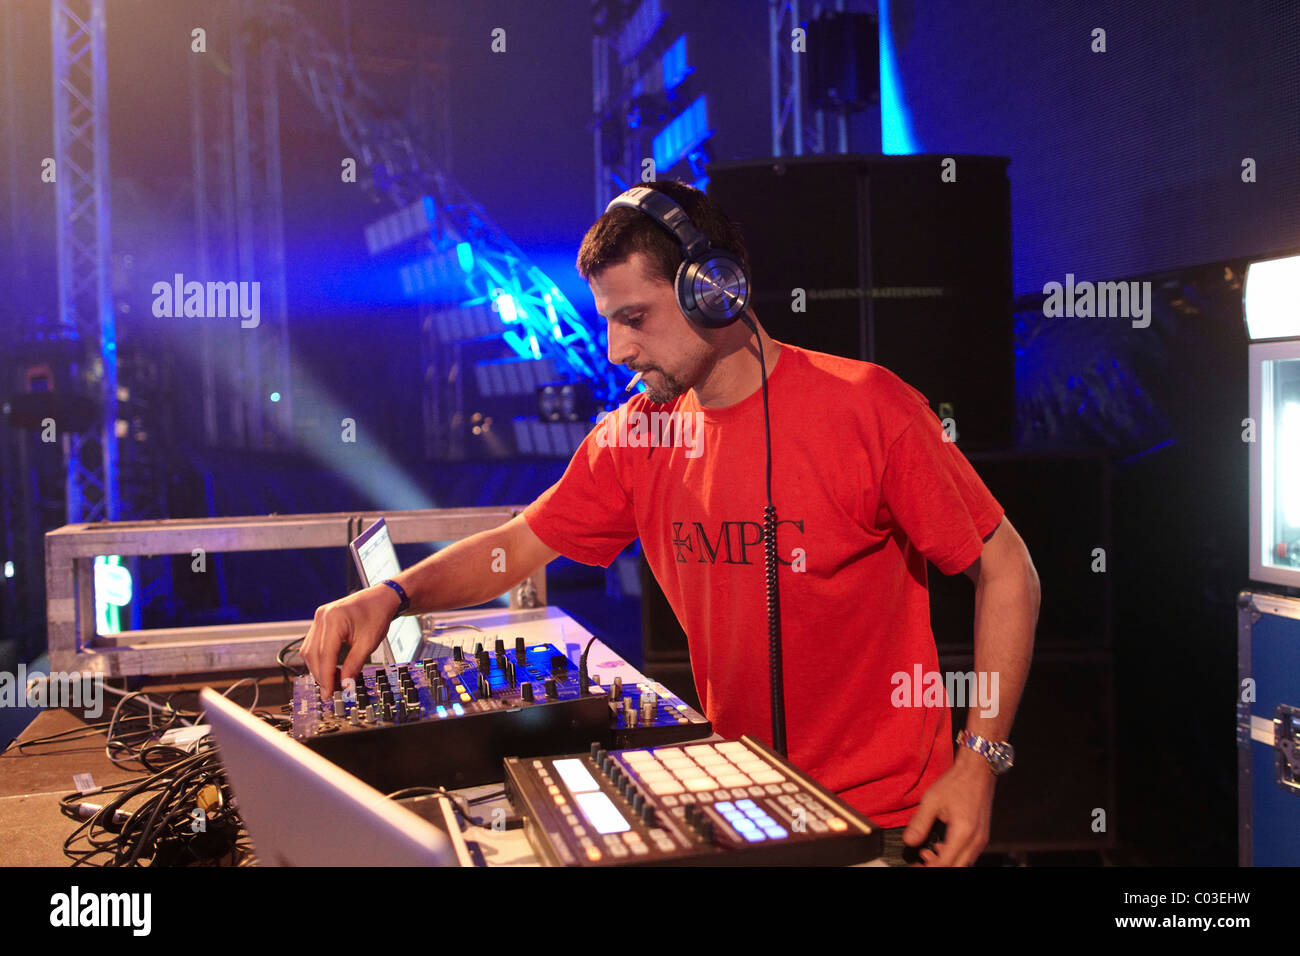 Dave Clarke, Nature One 2010 electronic music festival, Kastellaun, Rhineland-Palatinate, Germany, Europe - Stock Image